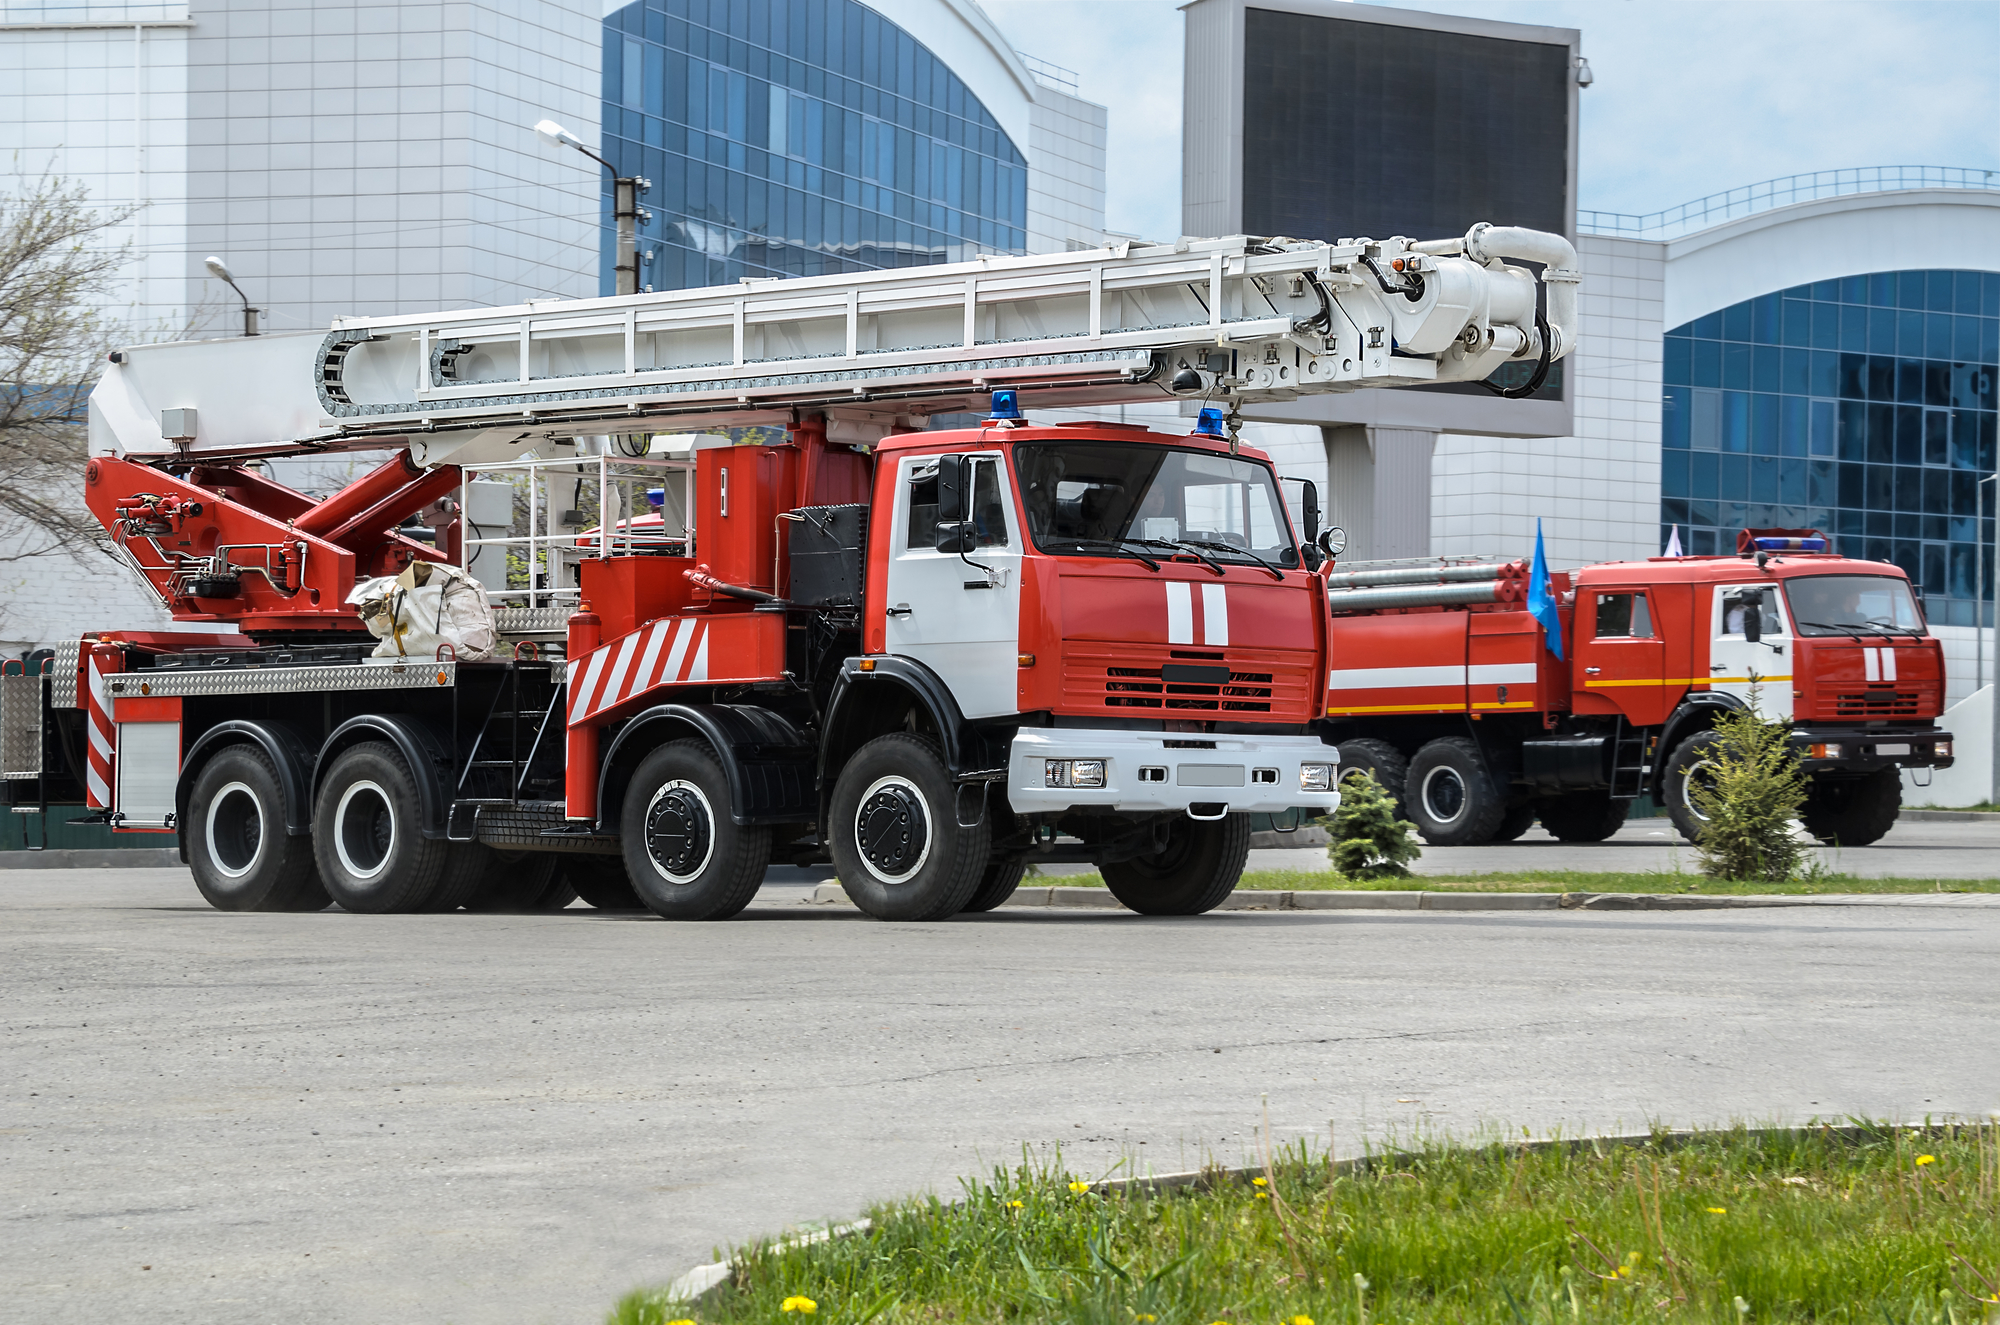 red-truck-fire-receivers.jpg